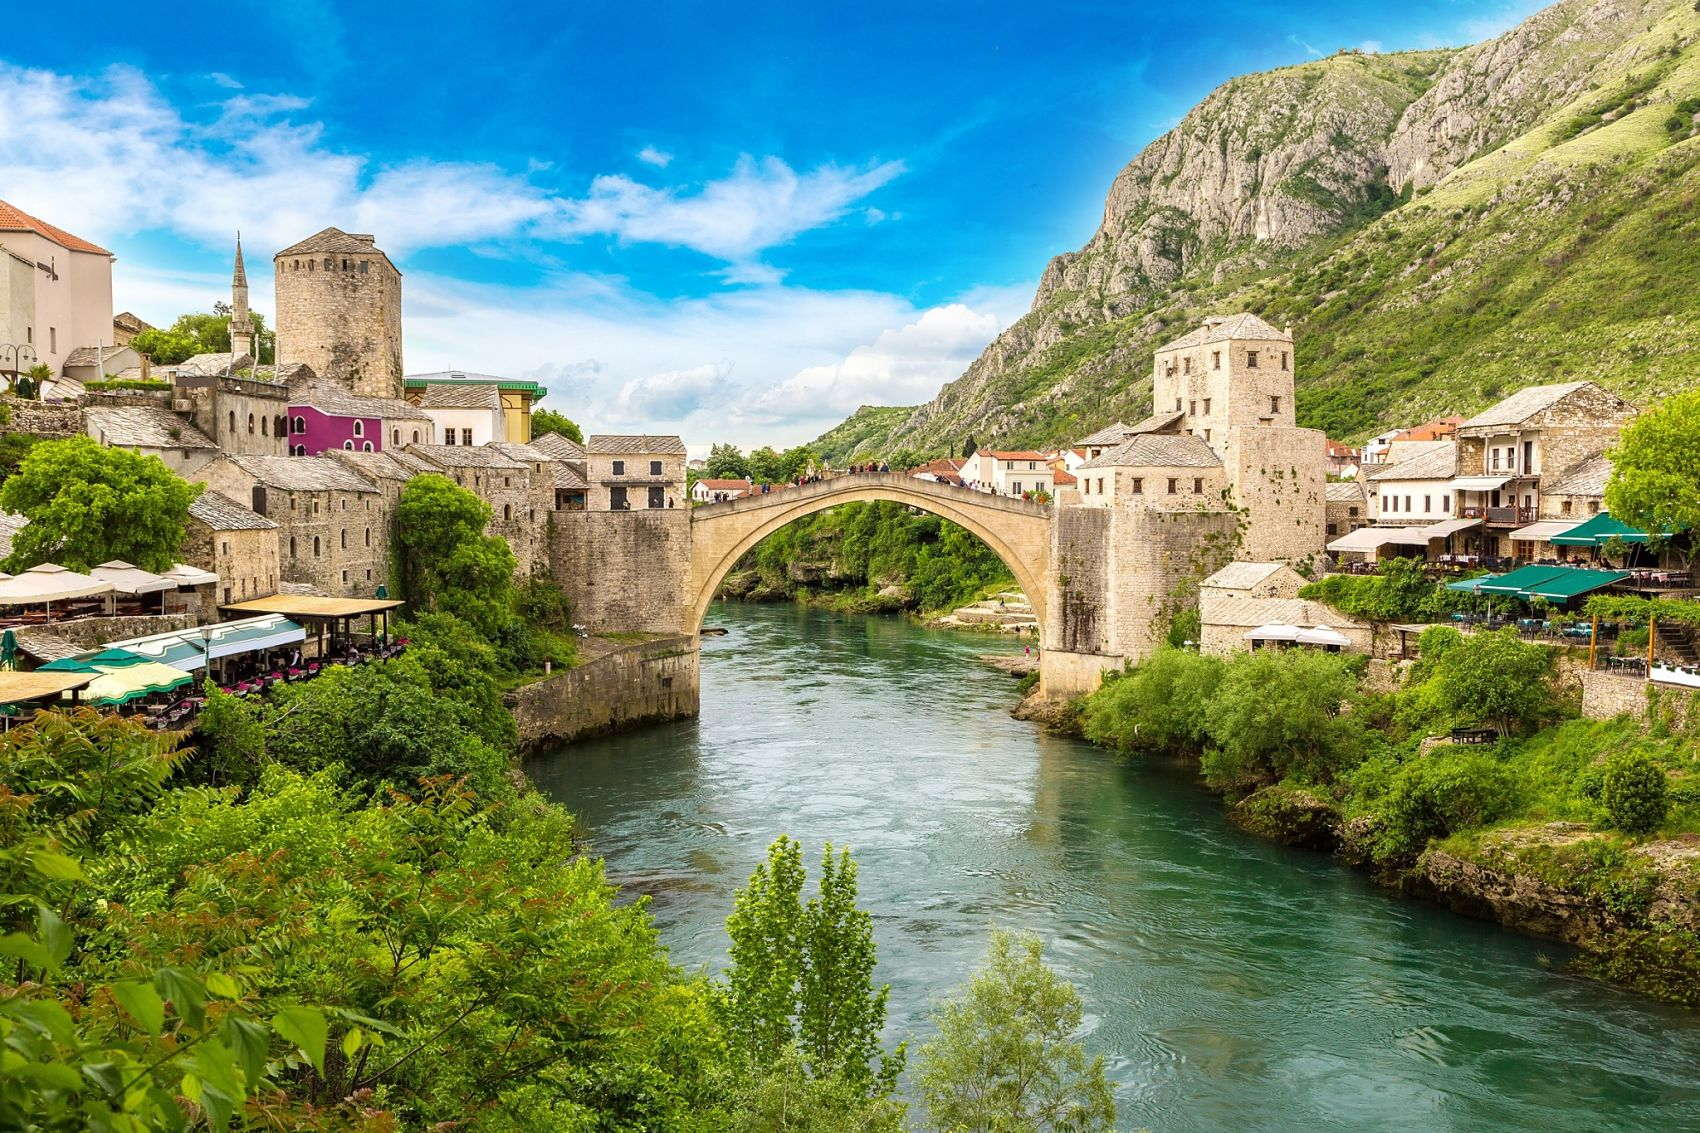 Mostar bridge in Bosnia,Balkan